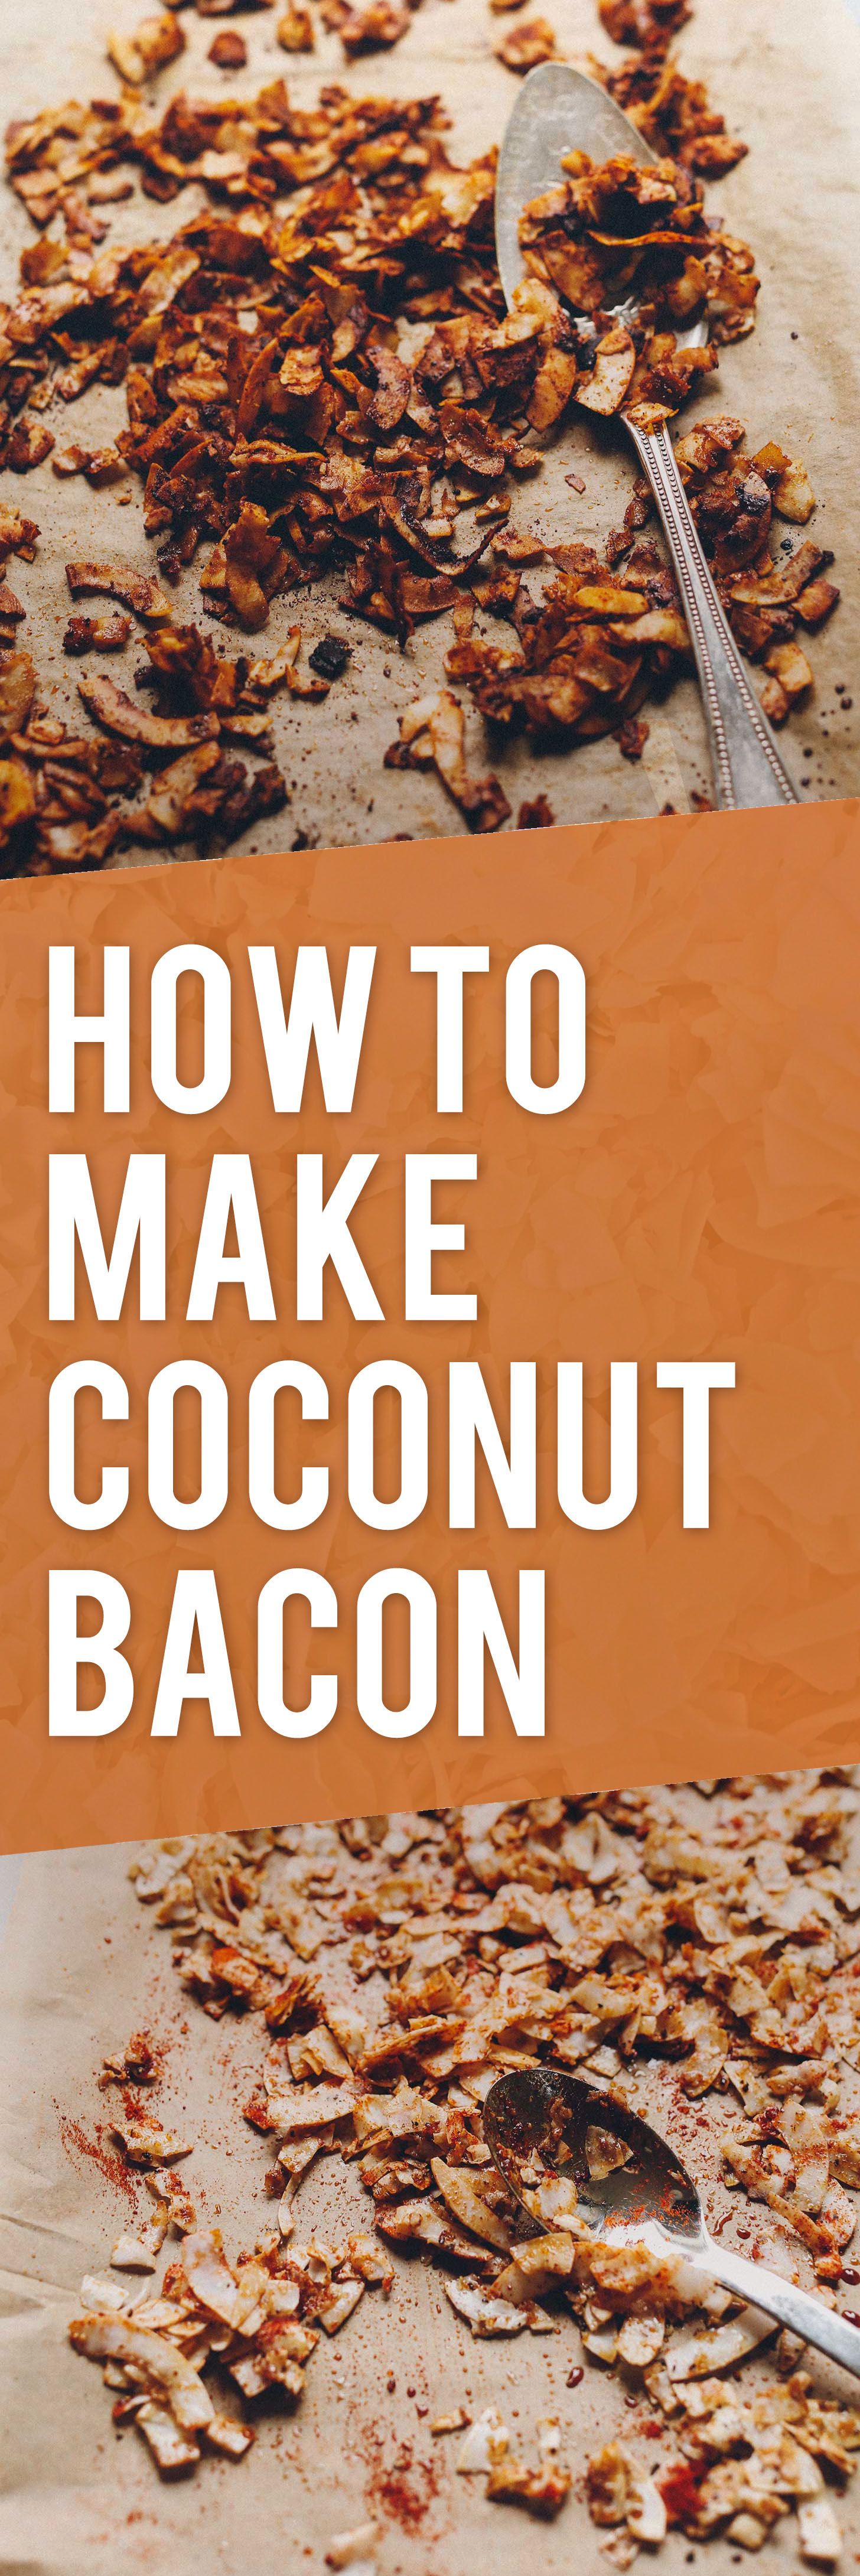 Parchment-lined baking sheets of Vegan Coconut Bacon